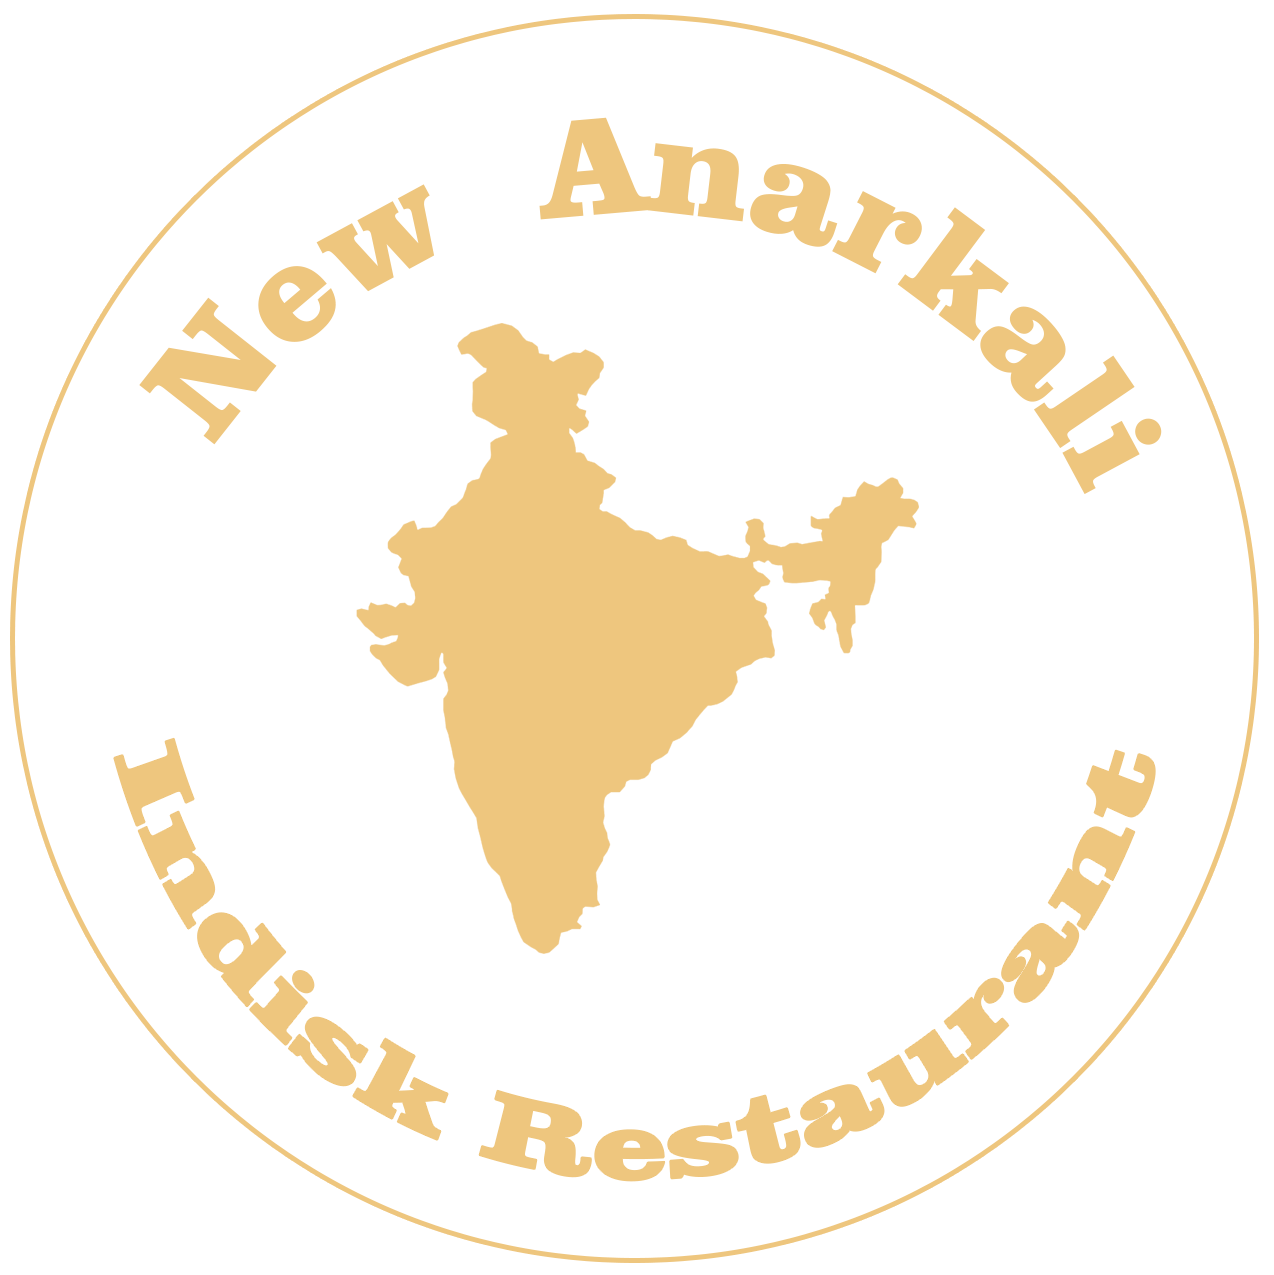 NEW ANARKALI indisk restaurant .png